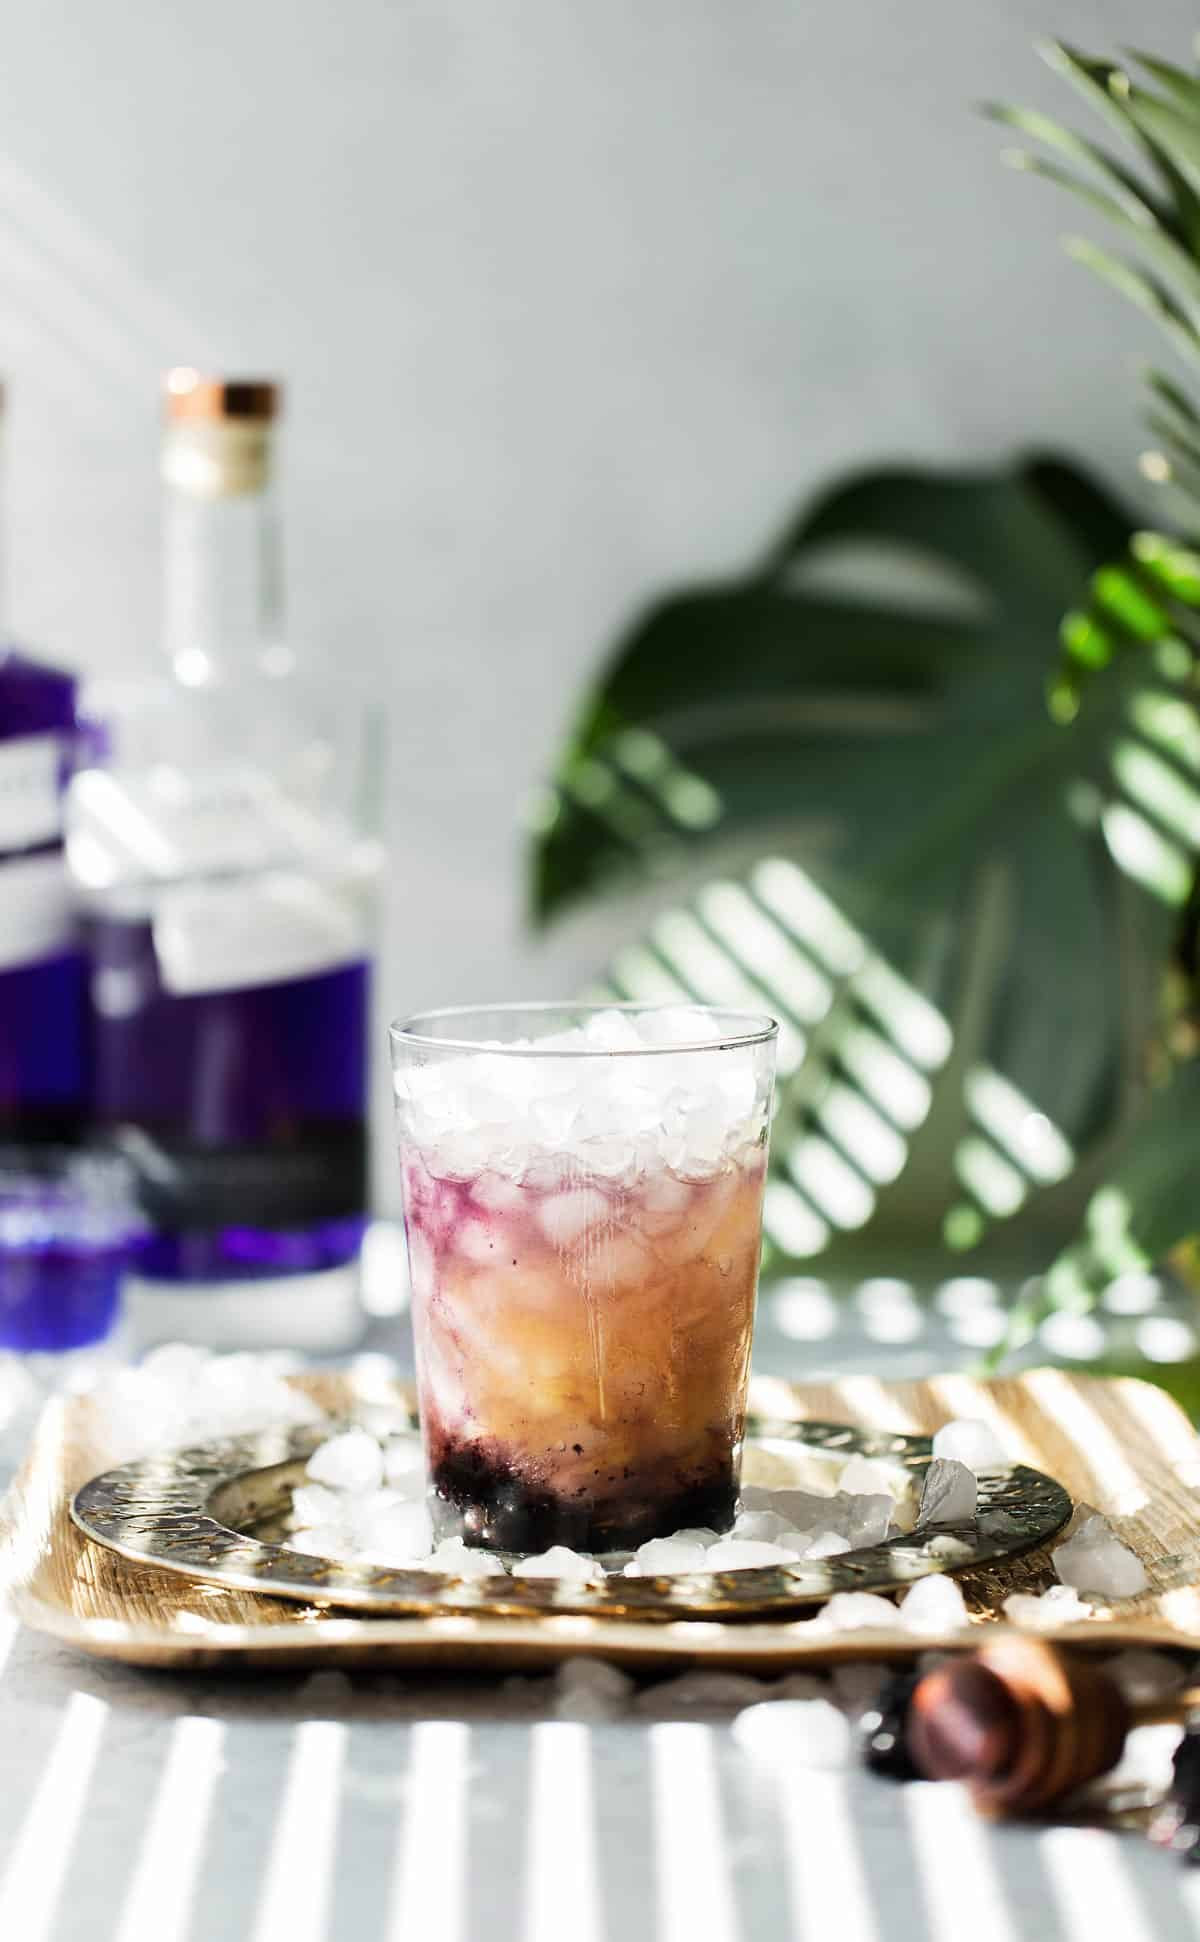 Pacific Empress Gin and Tonic made with color changing butterfly pea flower Empress 1908 Gin is a fruity gin and tonic cocktail with a Pacific Northwest twist. butterfly pea flower Empress gin cocktail | gin and tonic recipe | pink gin cocktail